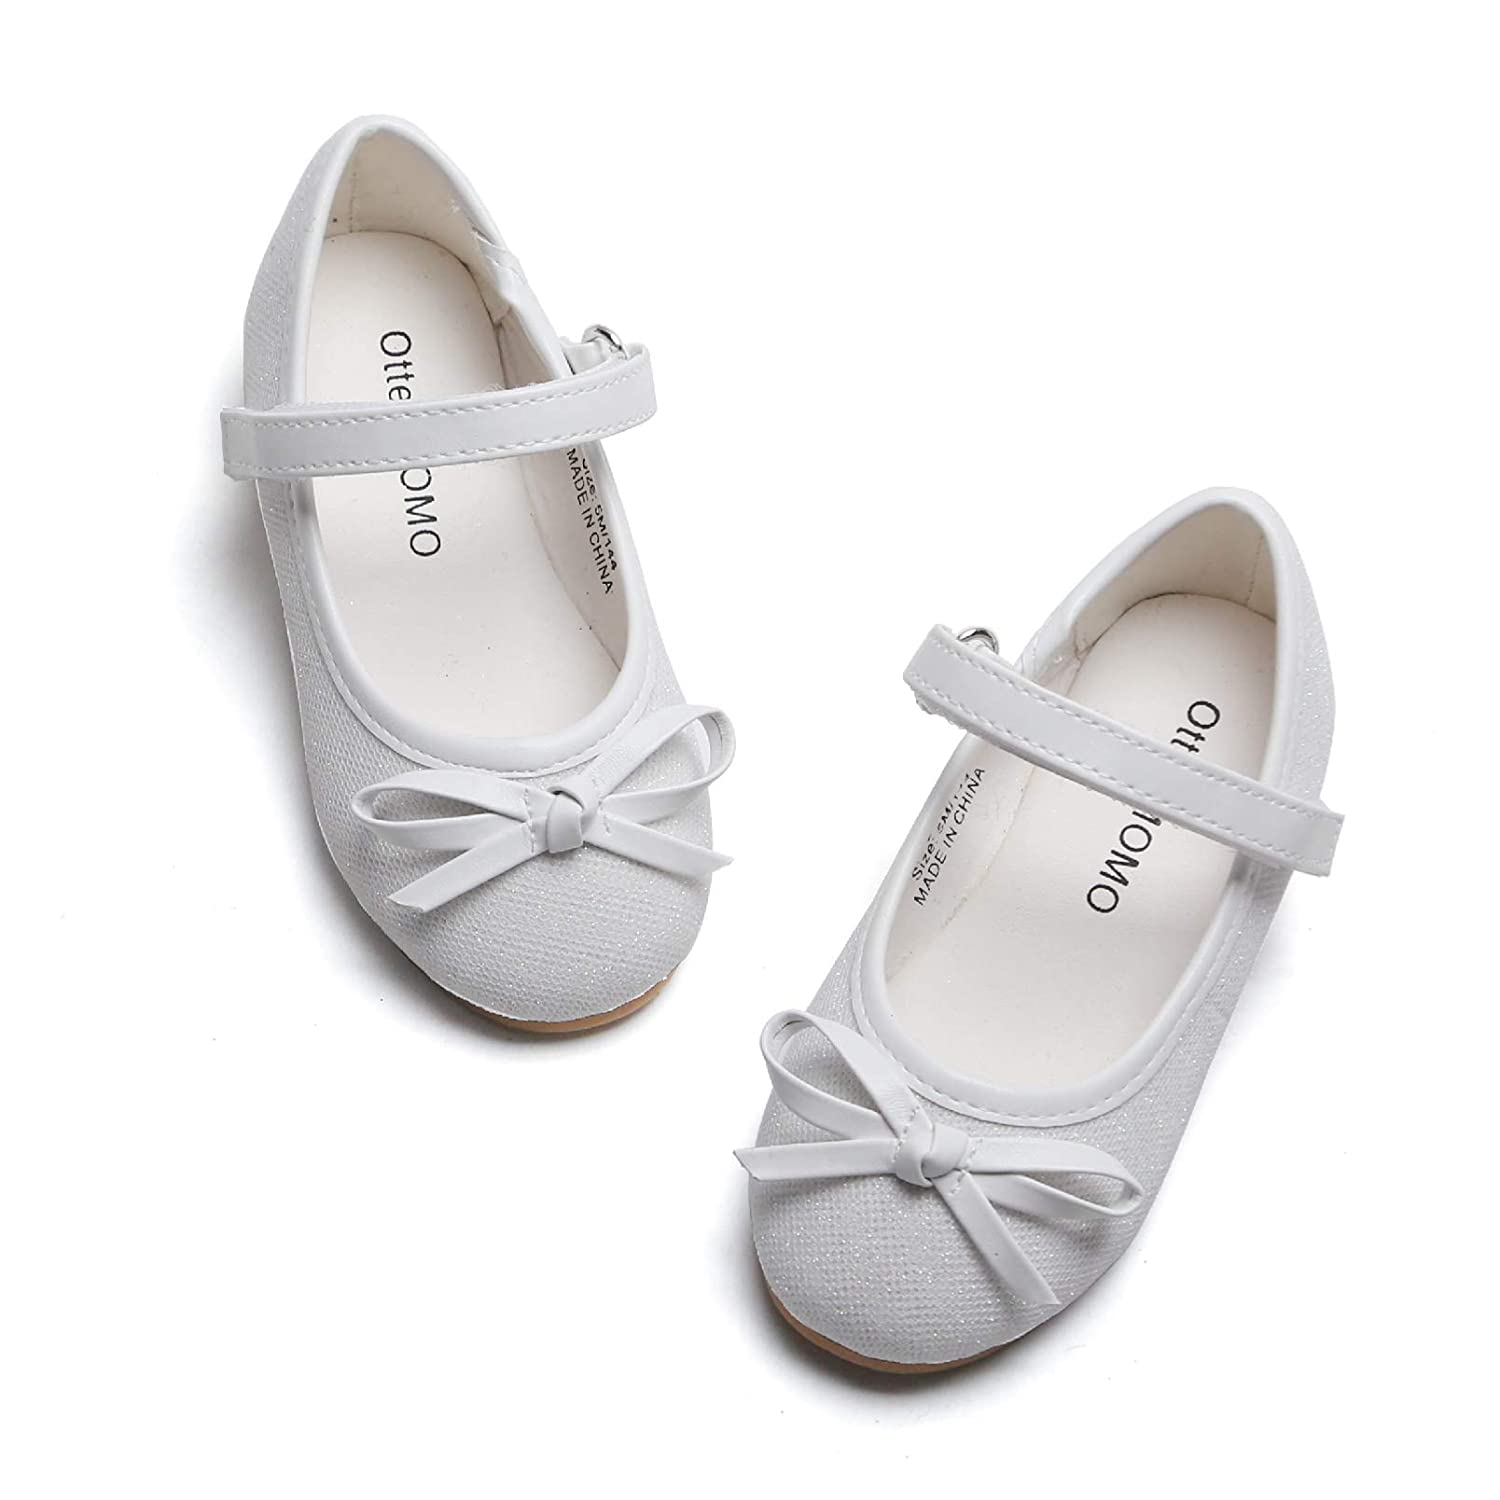 Otter MOMO Toddler Girls Ballet Flats Mary Jane Dress Shoes with Bow Knot White